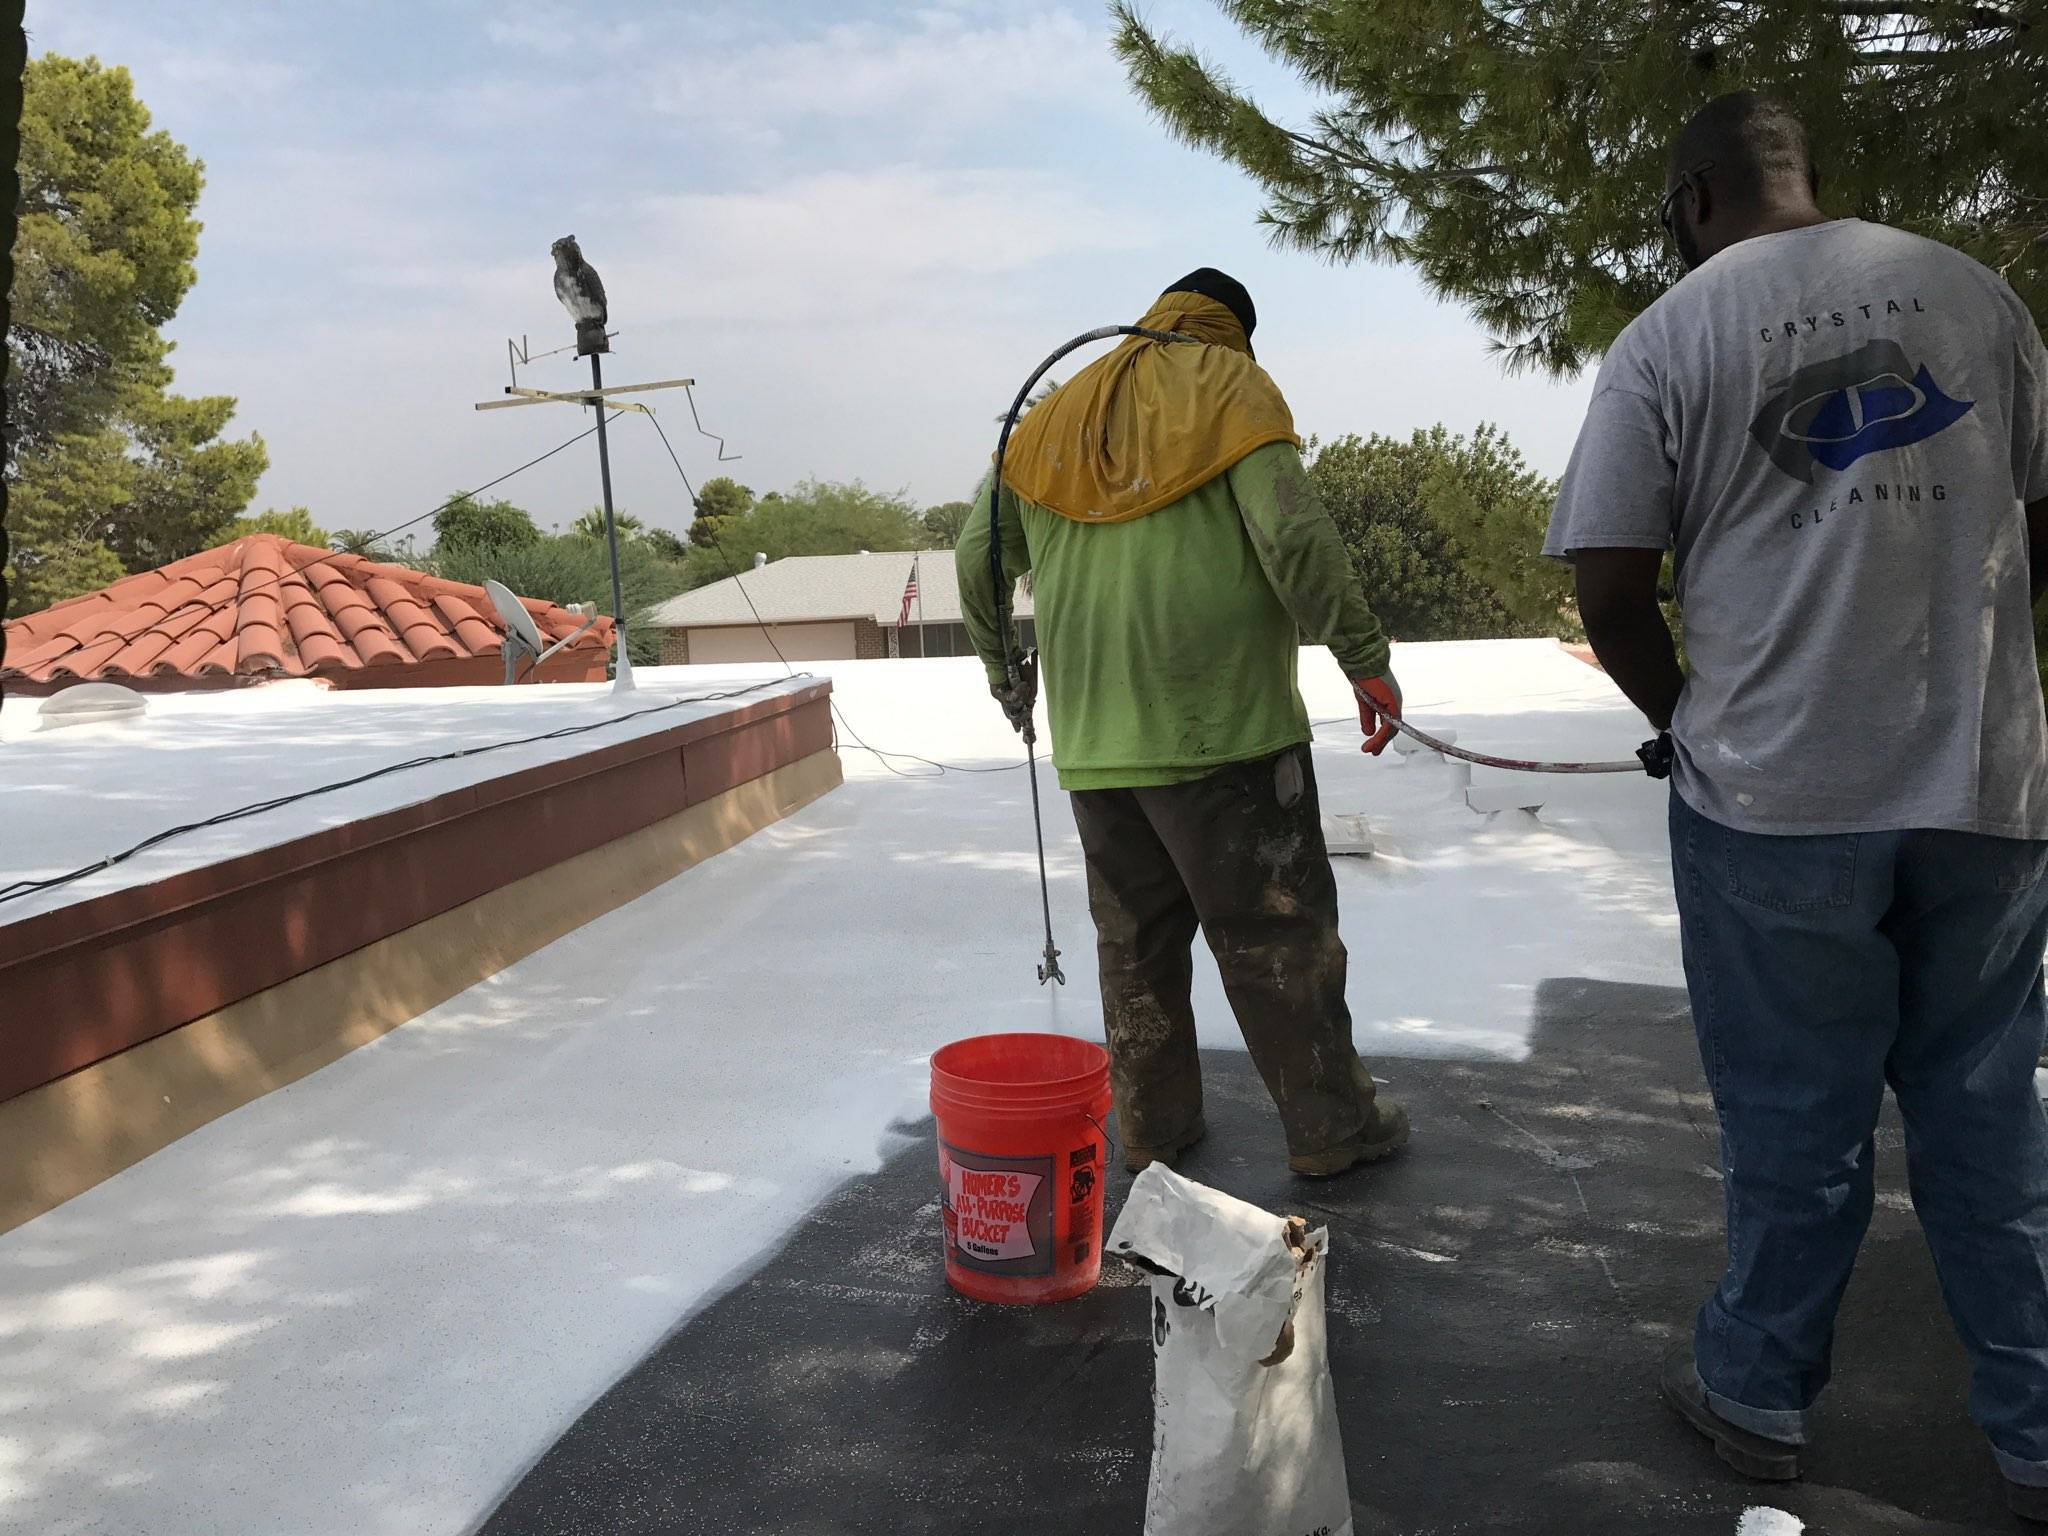 Patriot Construction & Consulting LLC - roofing contractor  | Photo 1 of 4 | Address: 4960 S Gilbert Rd Suite 284, Chandler, AZ 85249, United States | Phone: (602) 641-9501